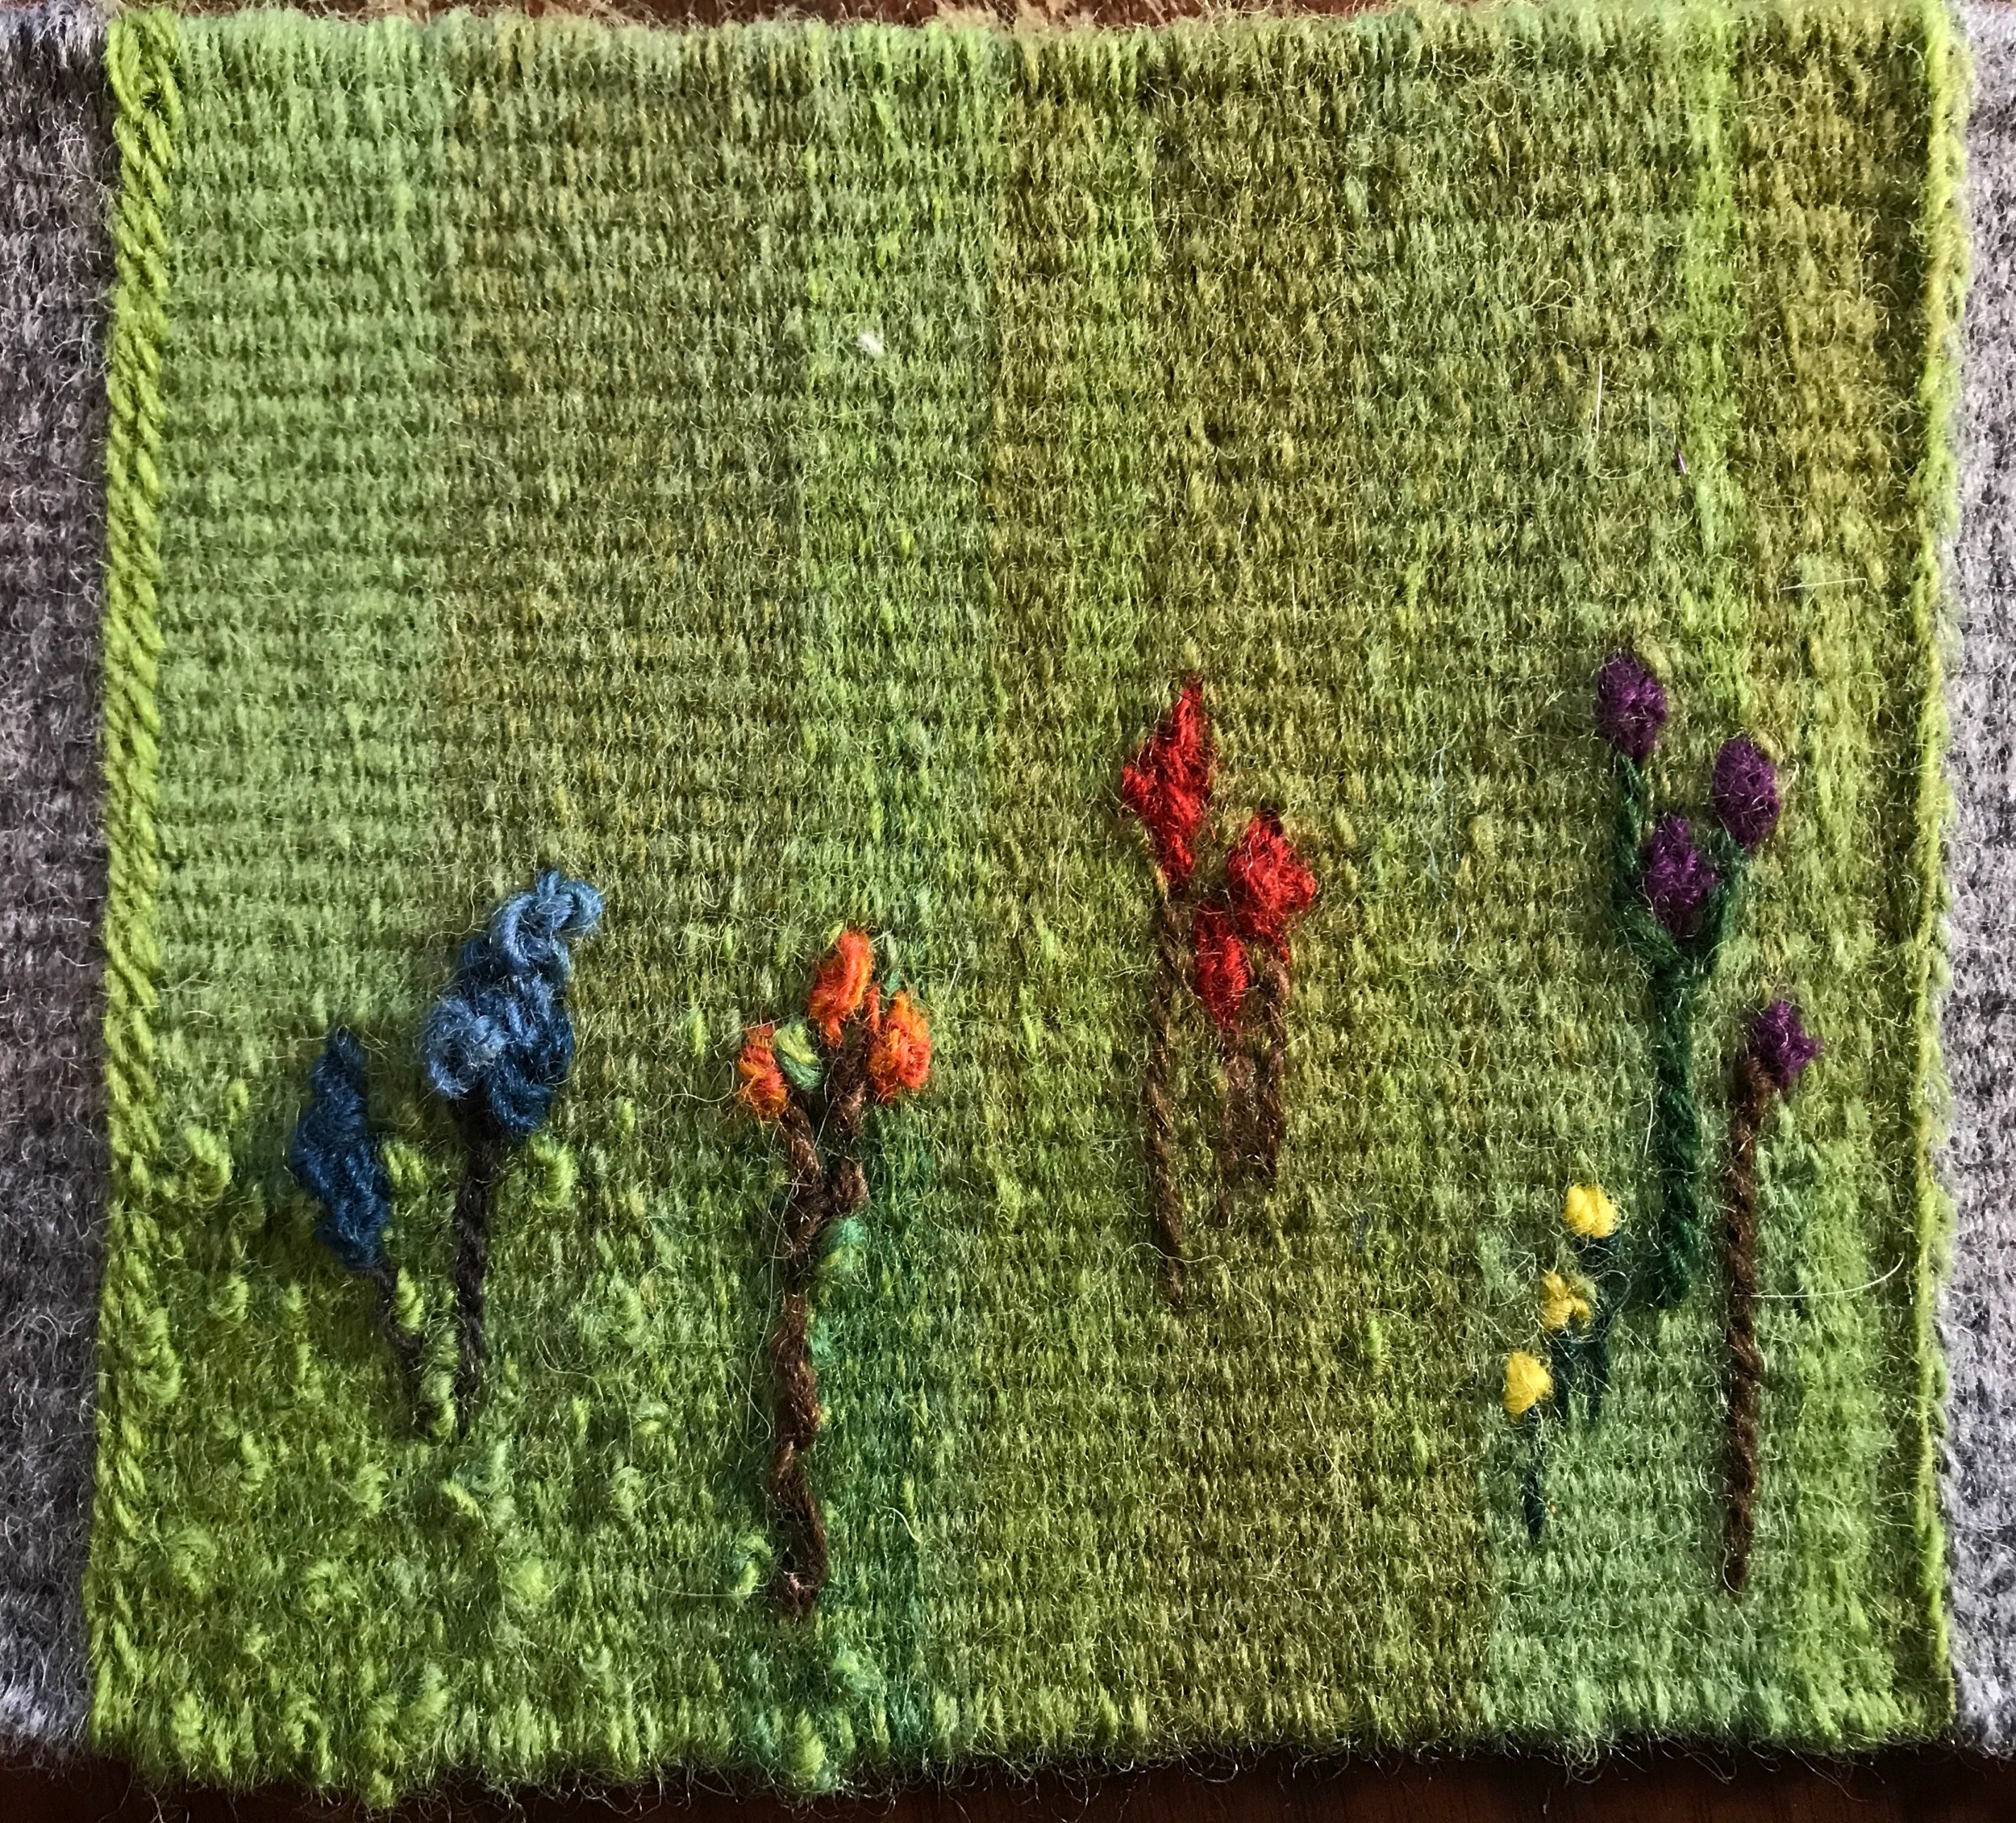 Playing with weaving wildflowers